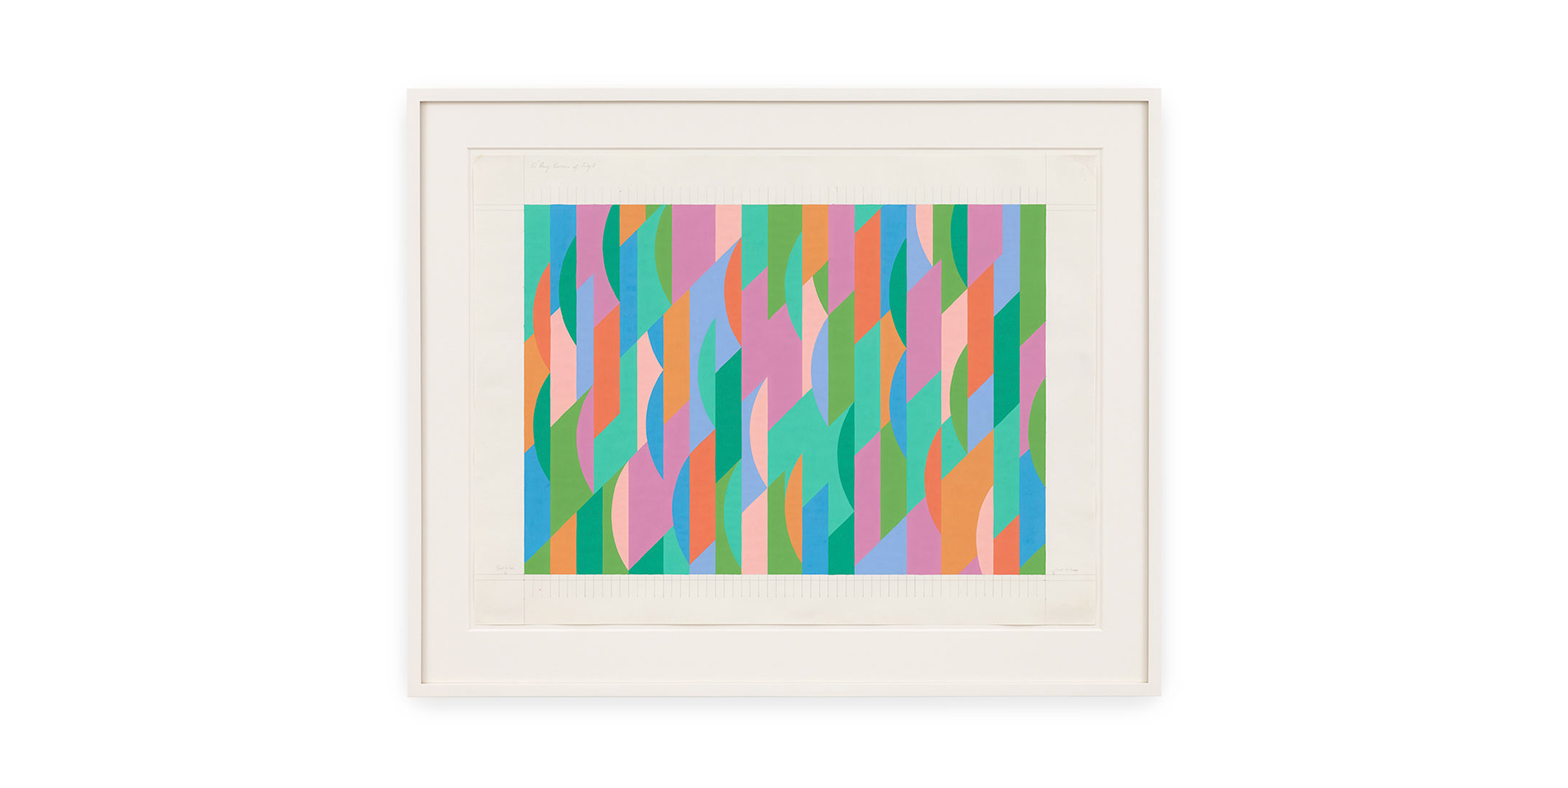 A study by Bridget Riley, titled 10th Aug Revision of July 8, dated 1997.